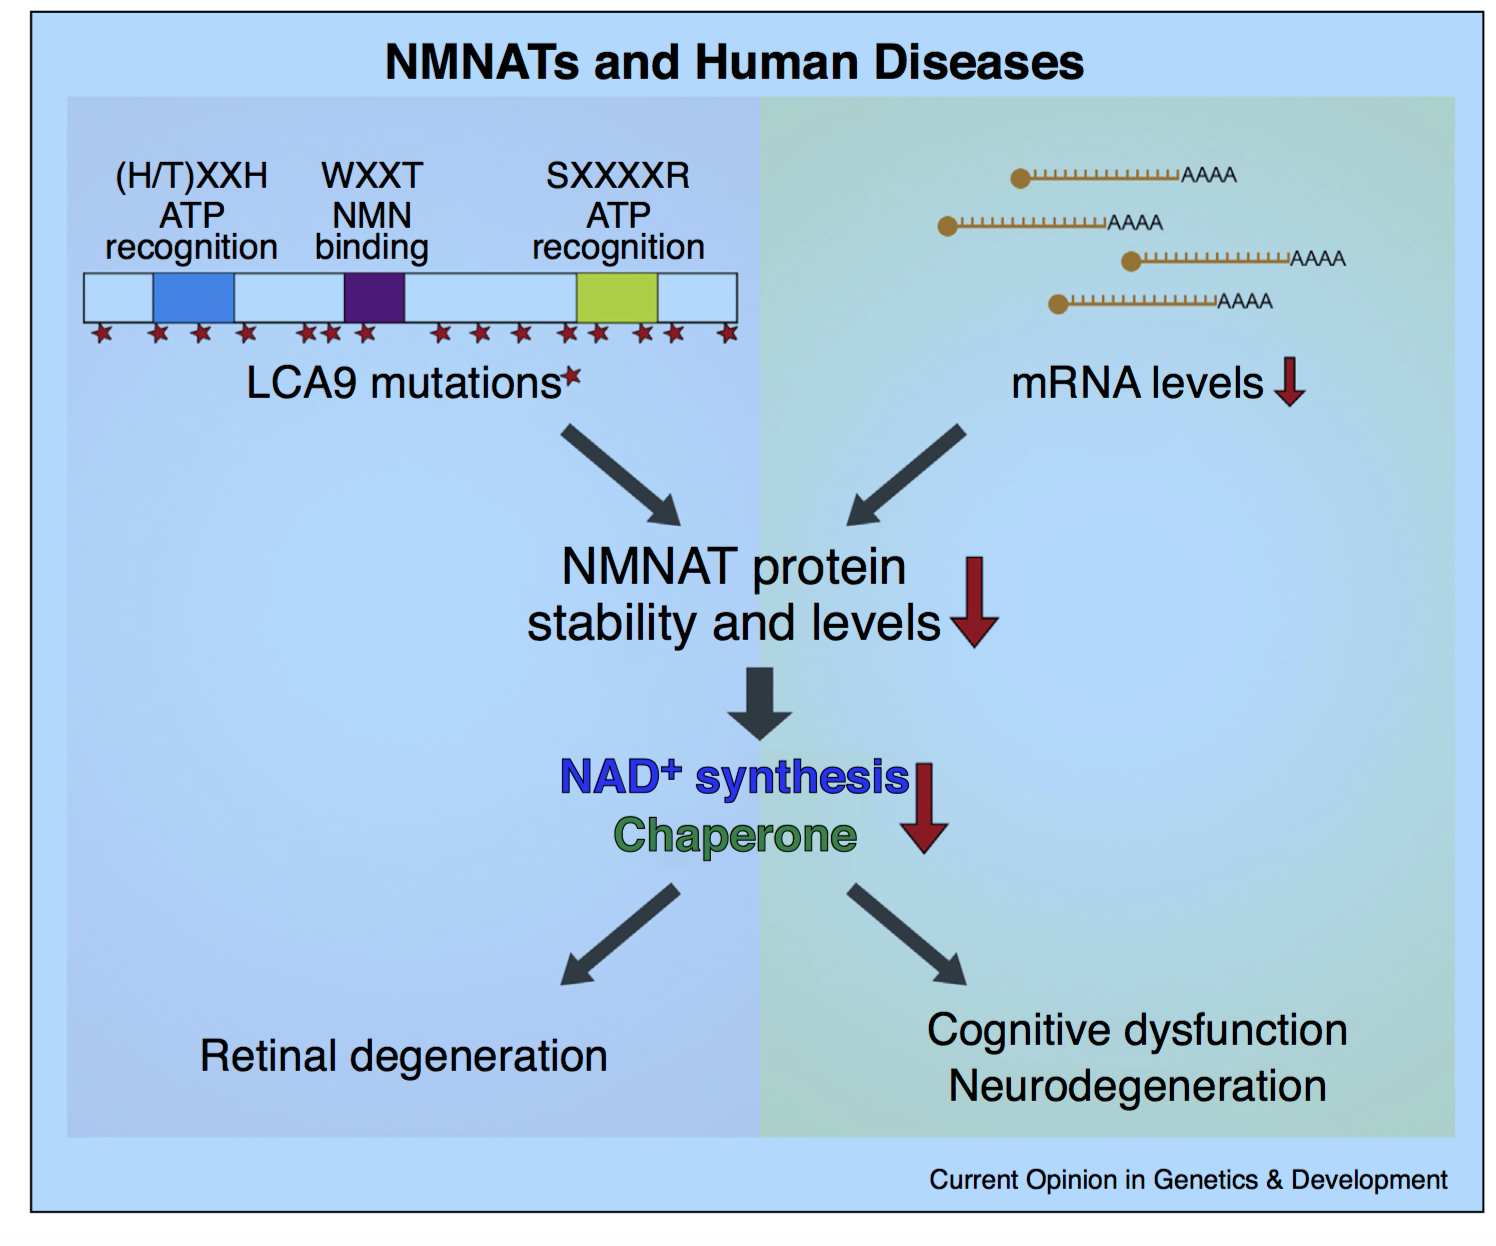 NMNAT: It's an NAD+ synthase, chaperone, AND neuroprotector